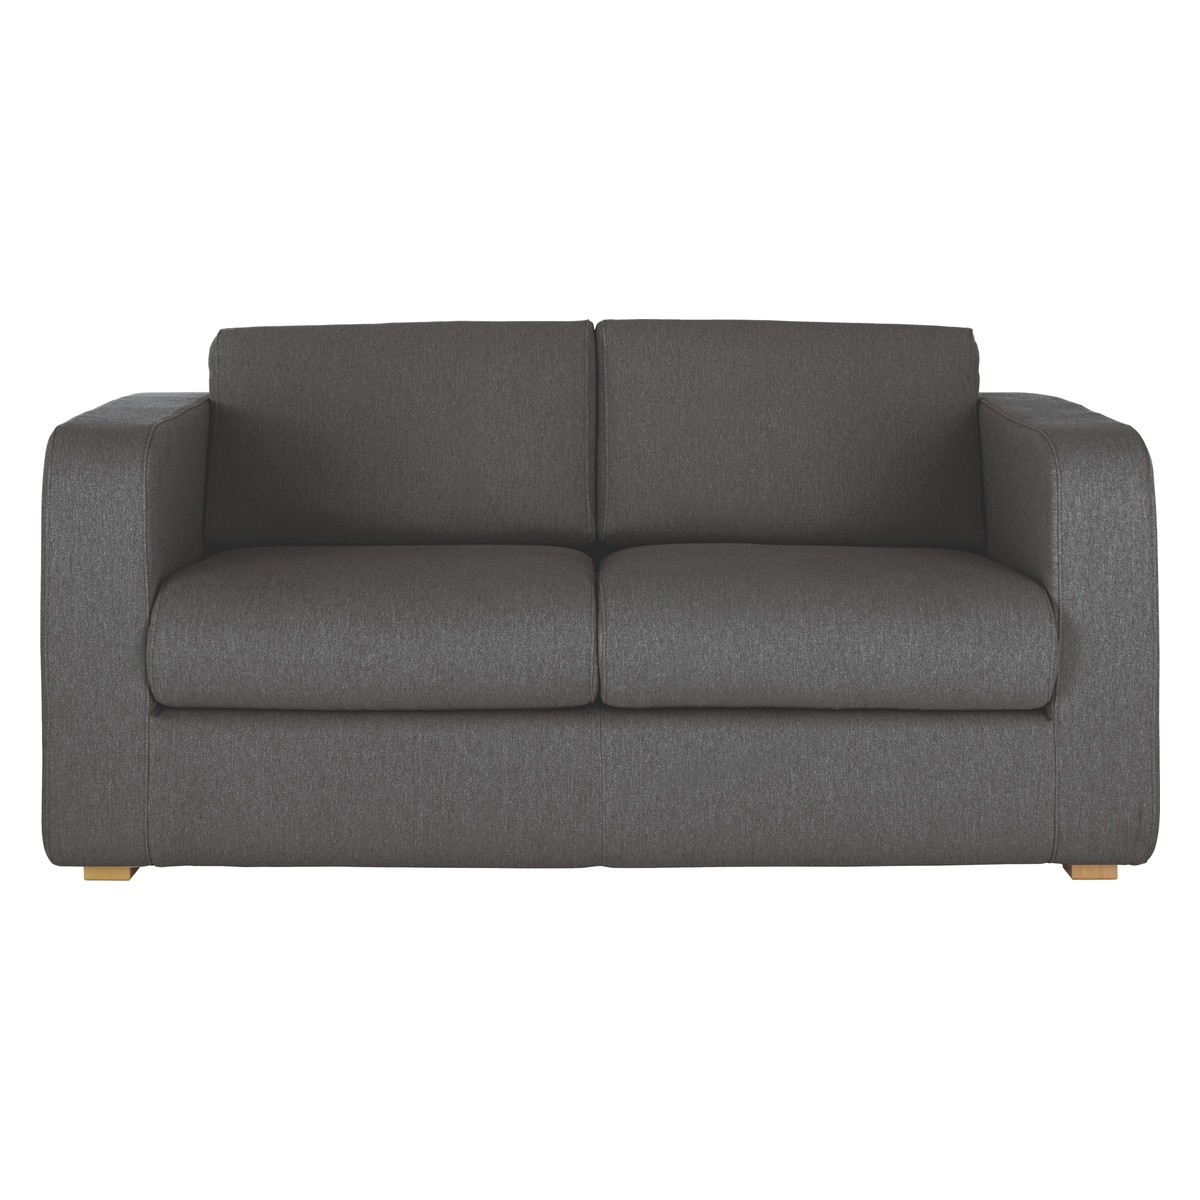 Porto Charcoal Fabric 2 Seater Sofa Bed Buy Now At Habitat Uk Regarding 2 Seater Sofas (Image 14 of 15)